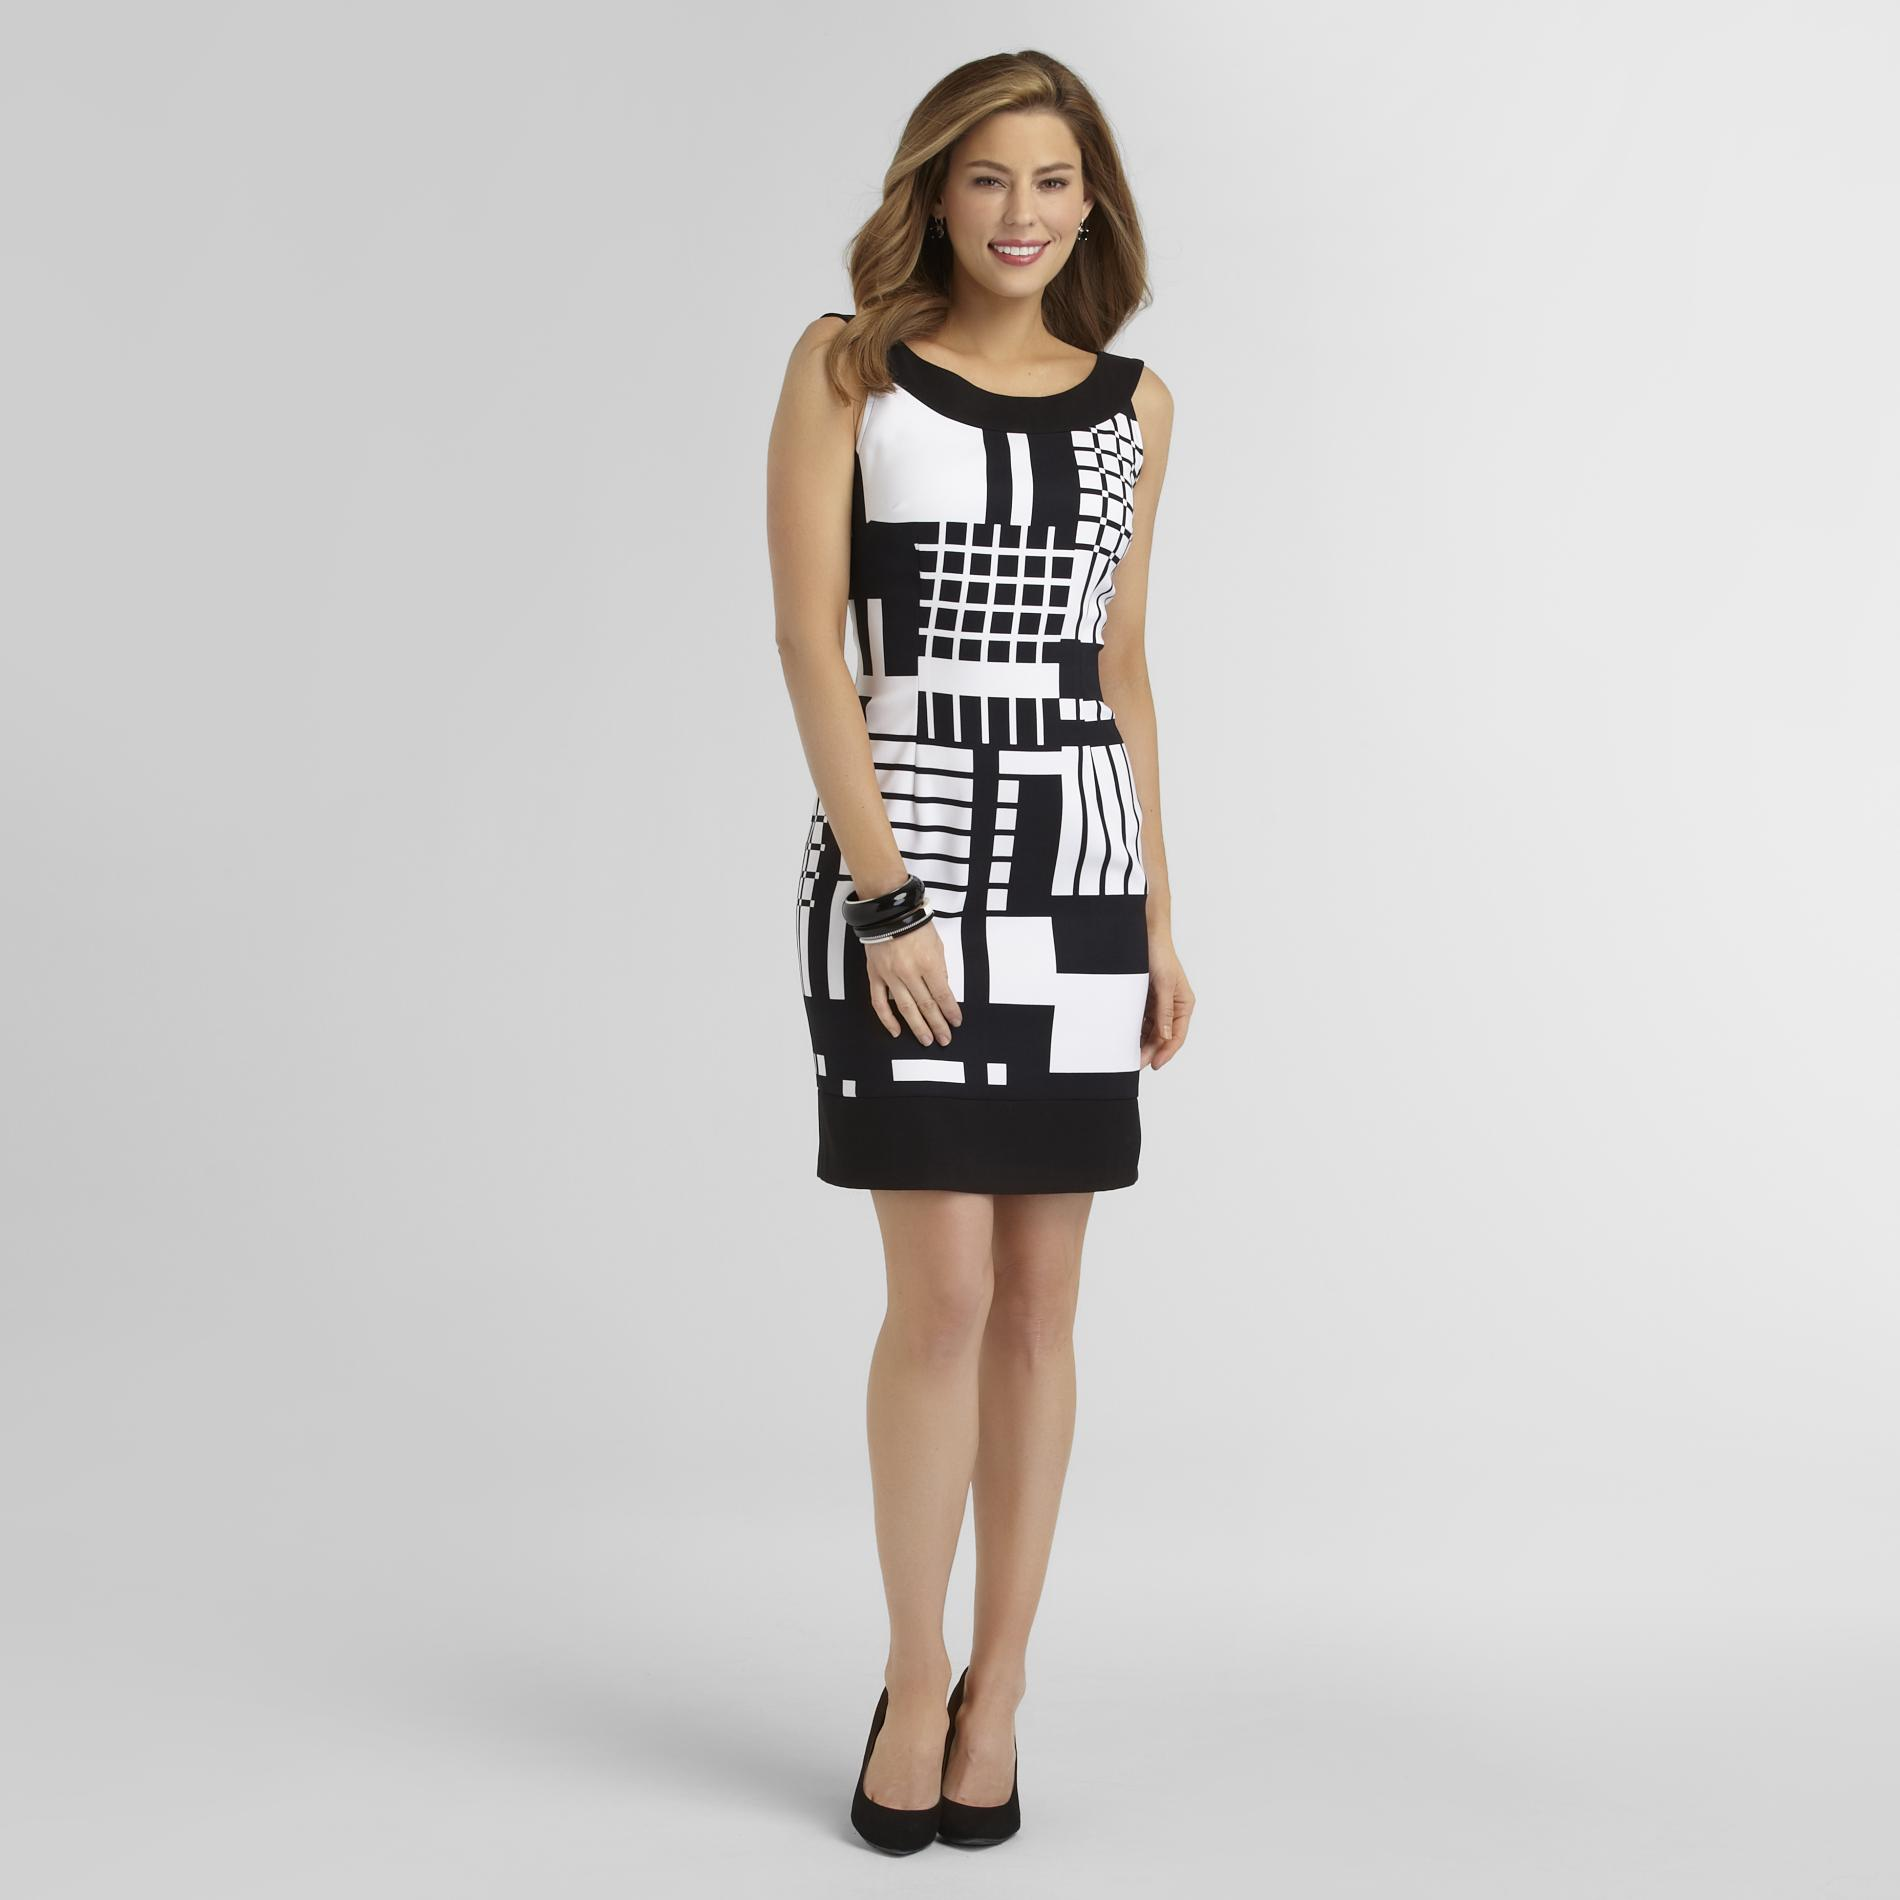 Connected Apparel Women's Sleeveless Pencil Dress - Geometric at Sears.com